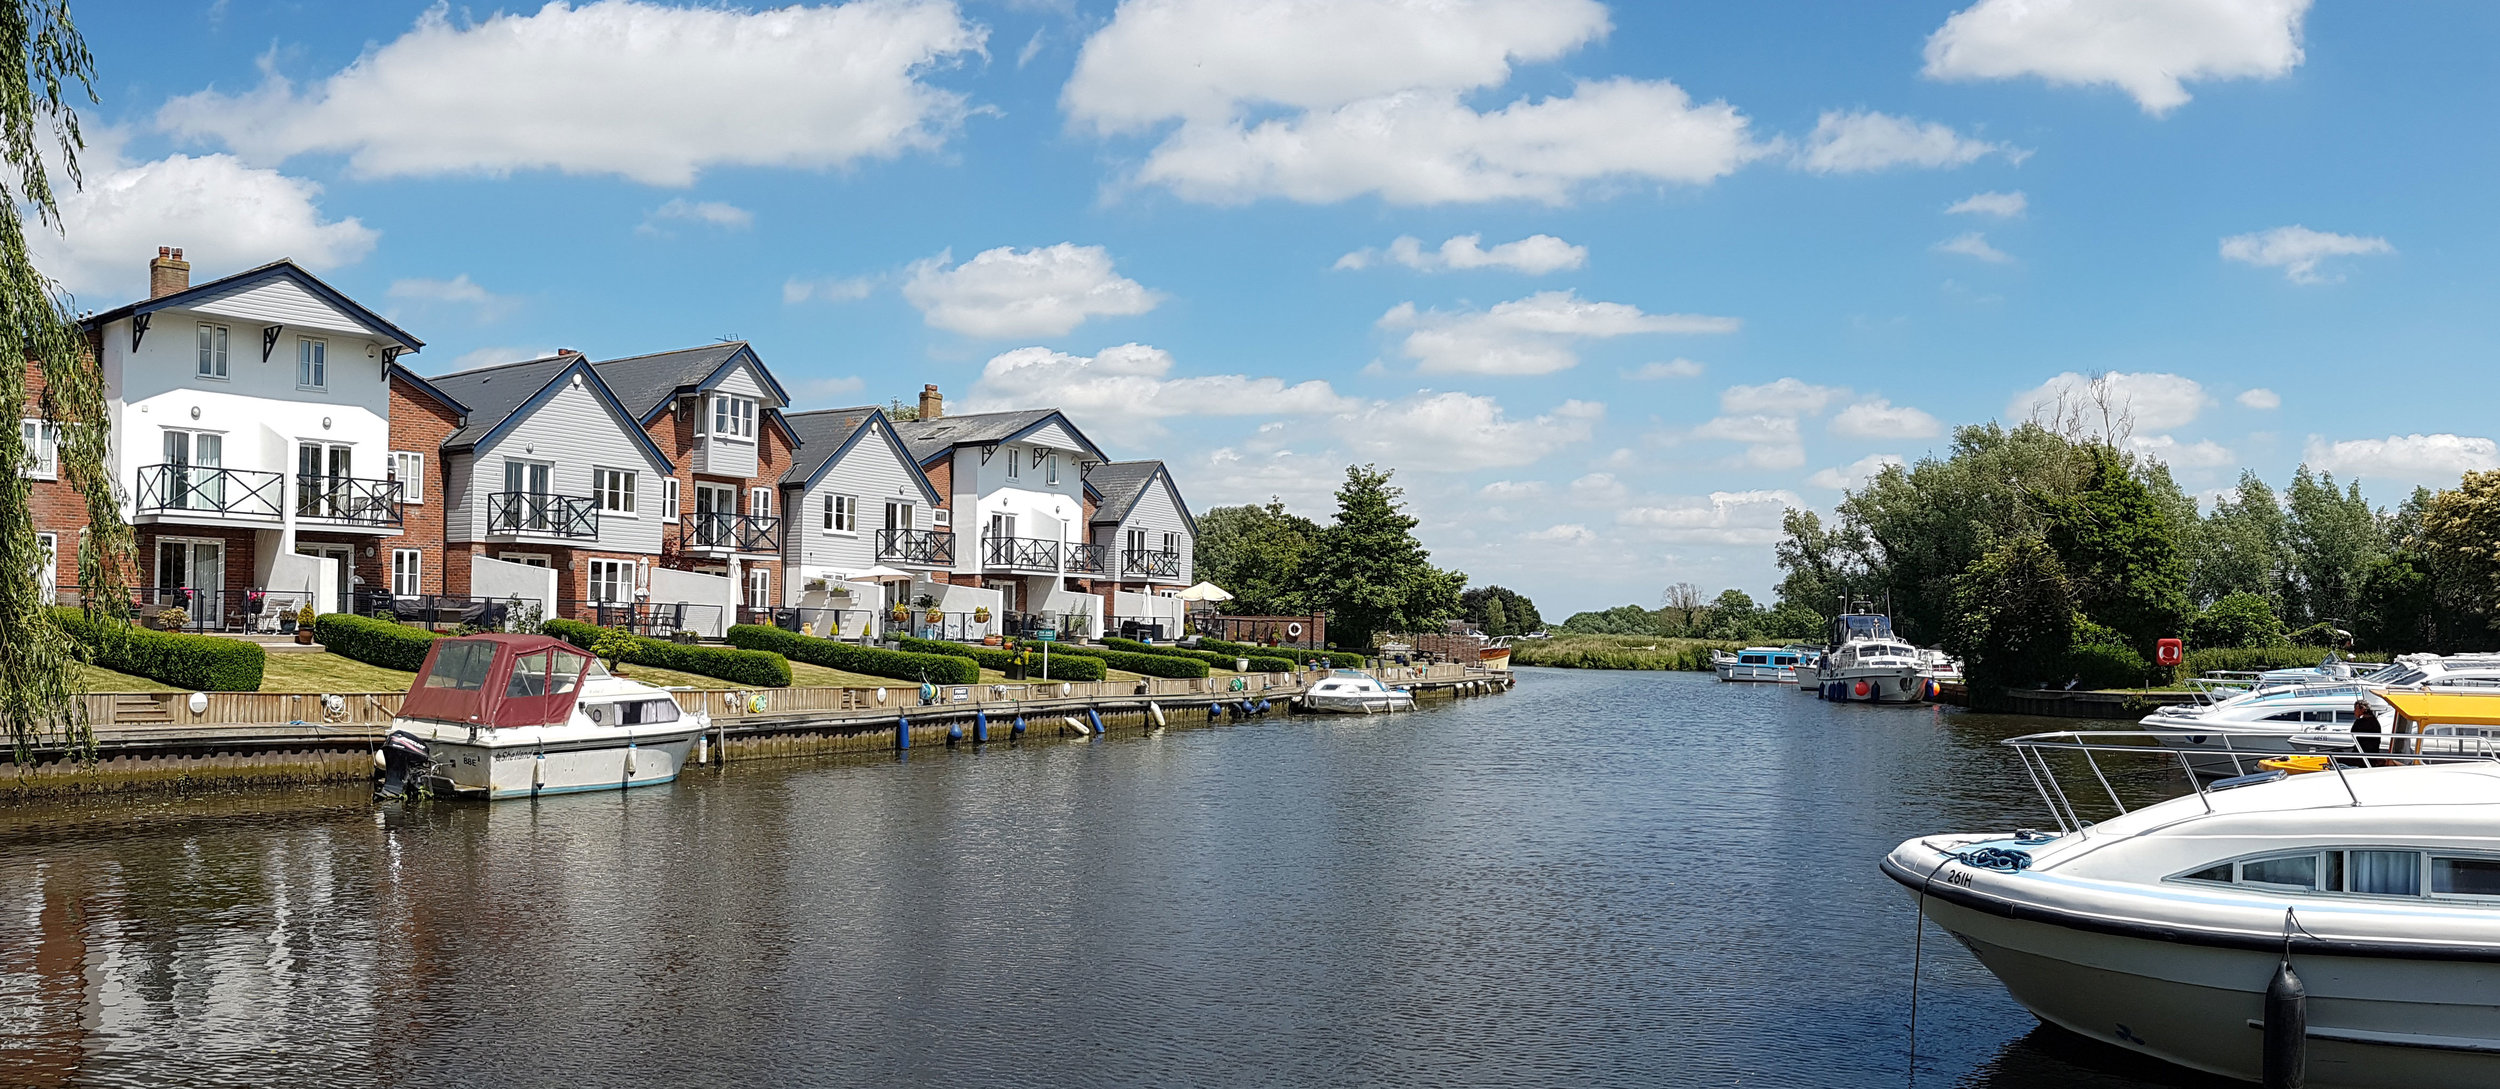 Loddon Marina, a few minutes walk from Moles Acre